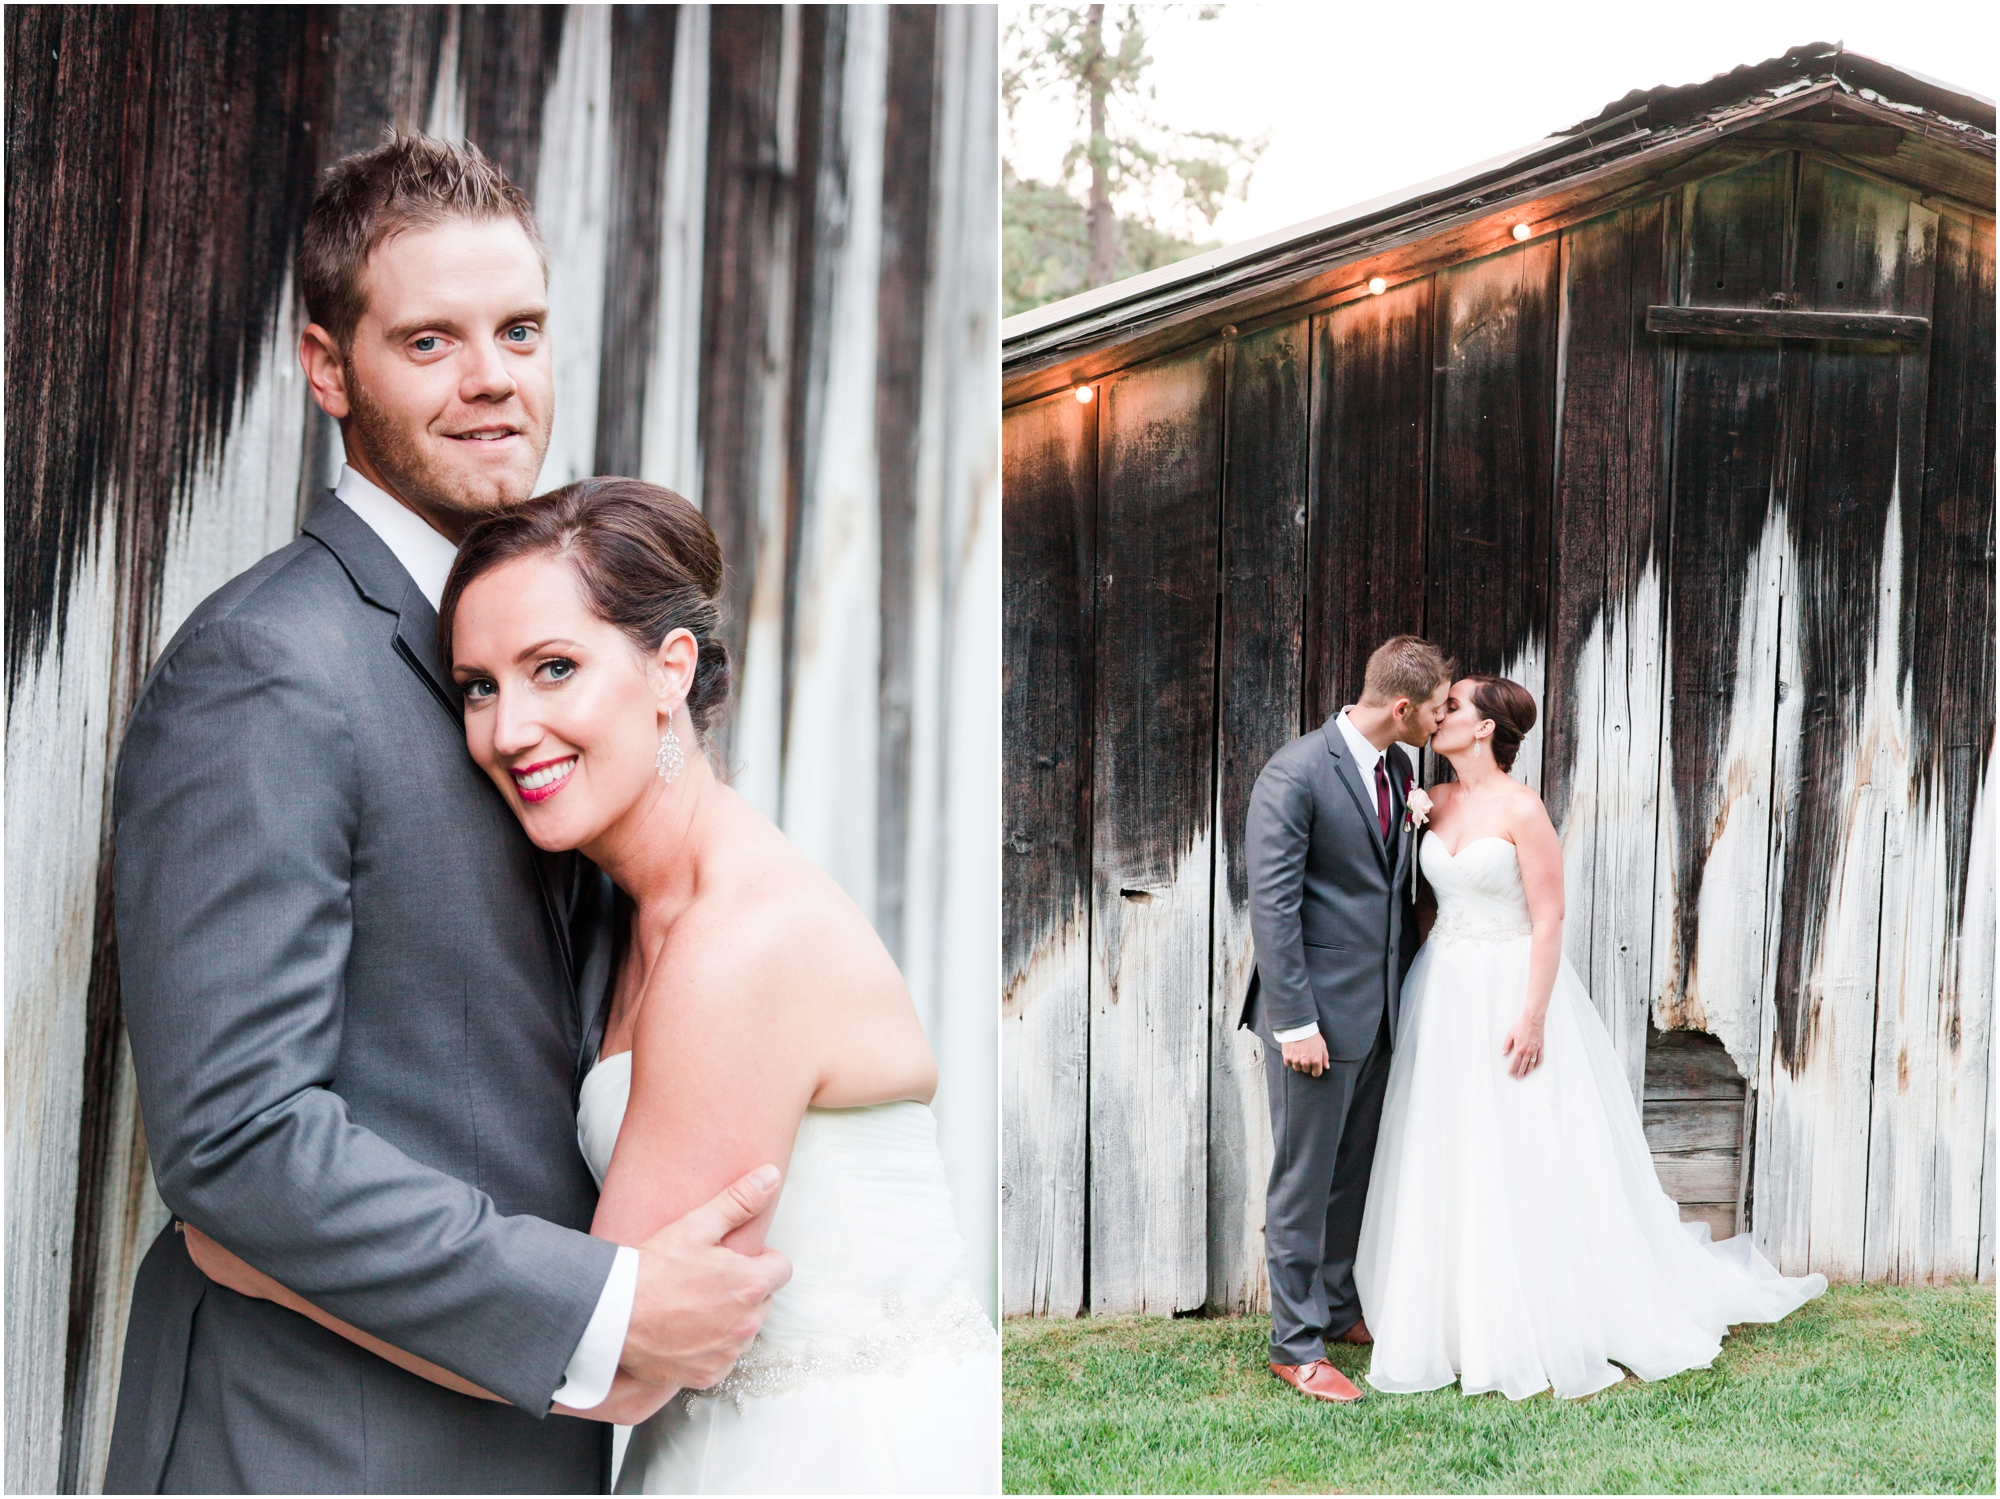 Picchetti Winery wedding pictures by Briana Calderon Photography_0404.jpg